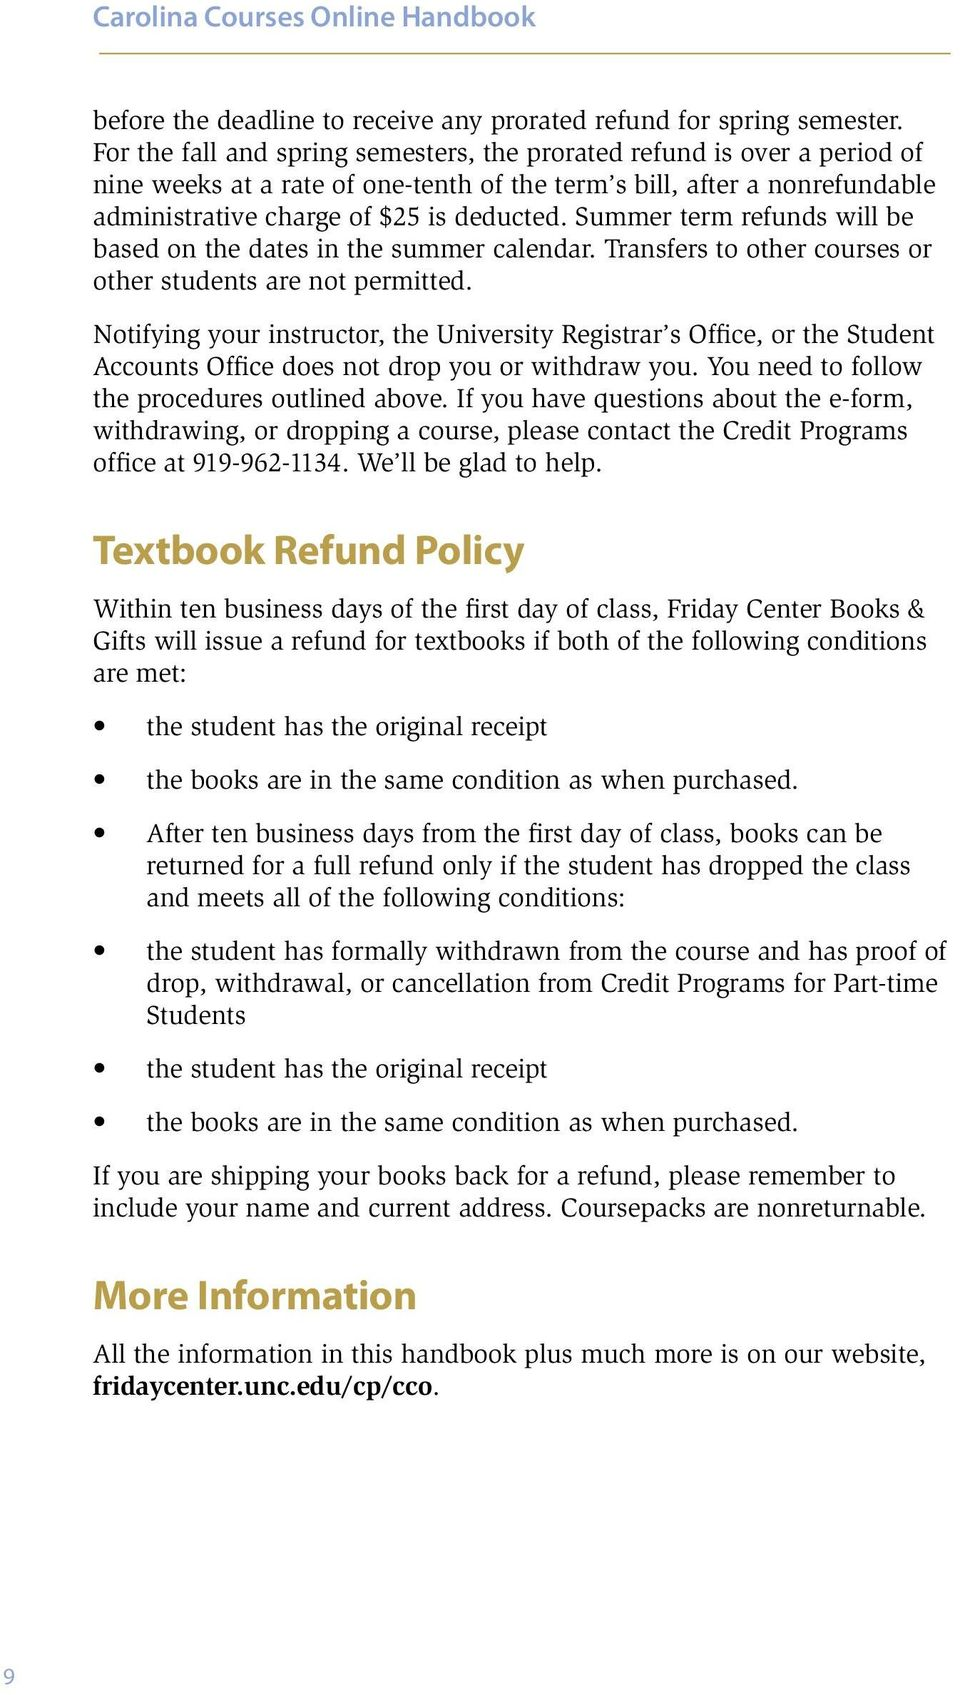 Summer term refunds will be based on the dates in the summer calendar. Transfers to other courses or other students are not permitted.